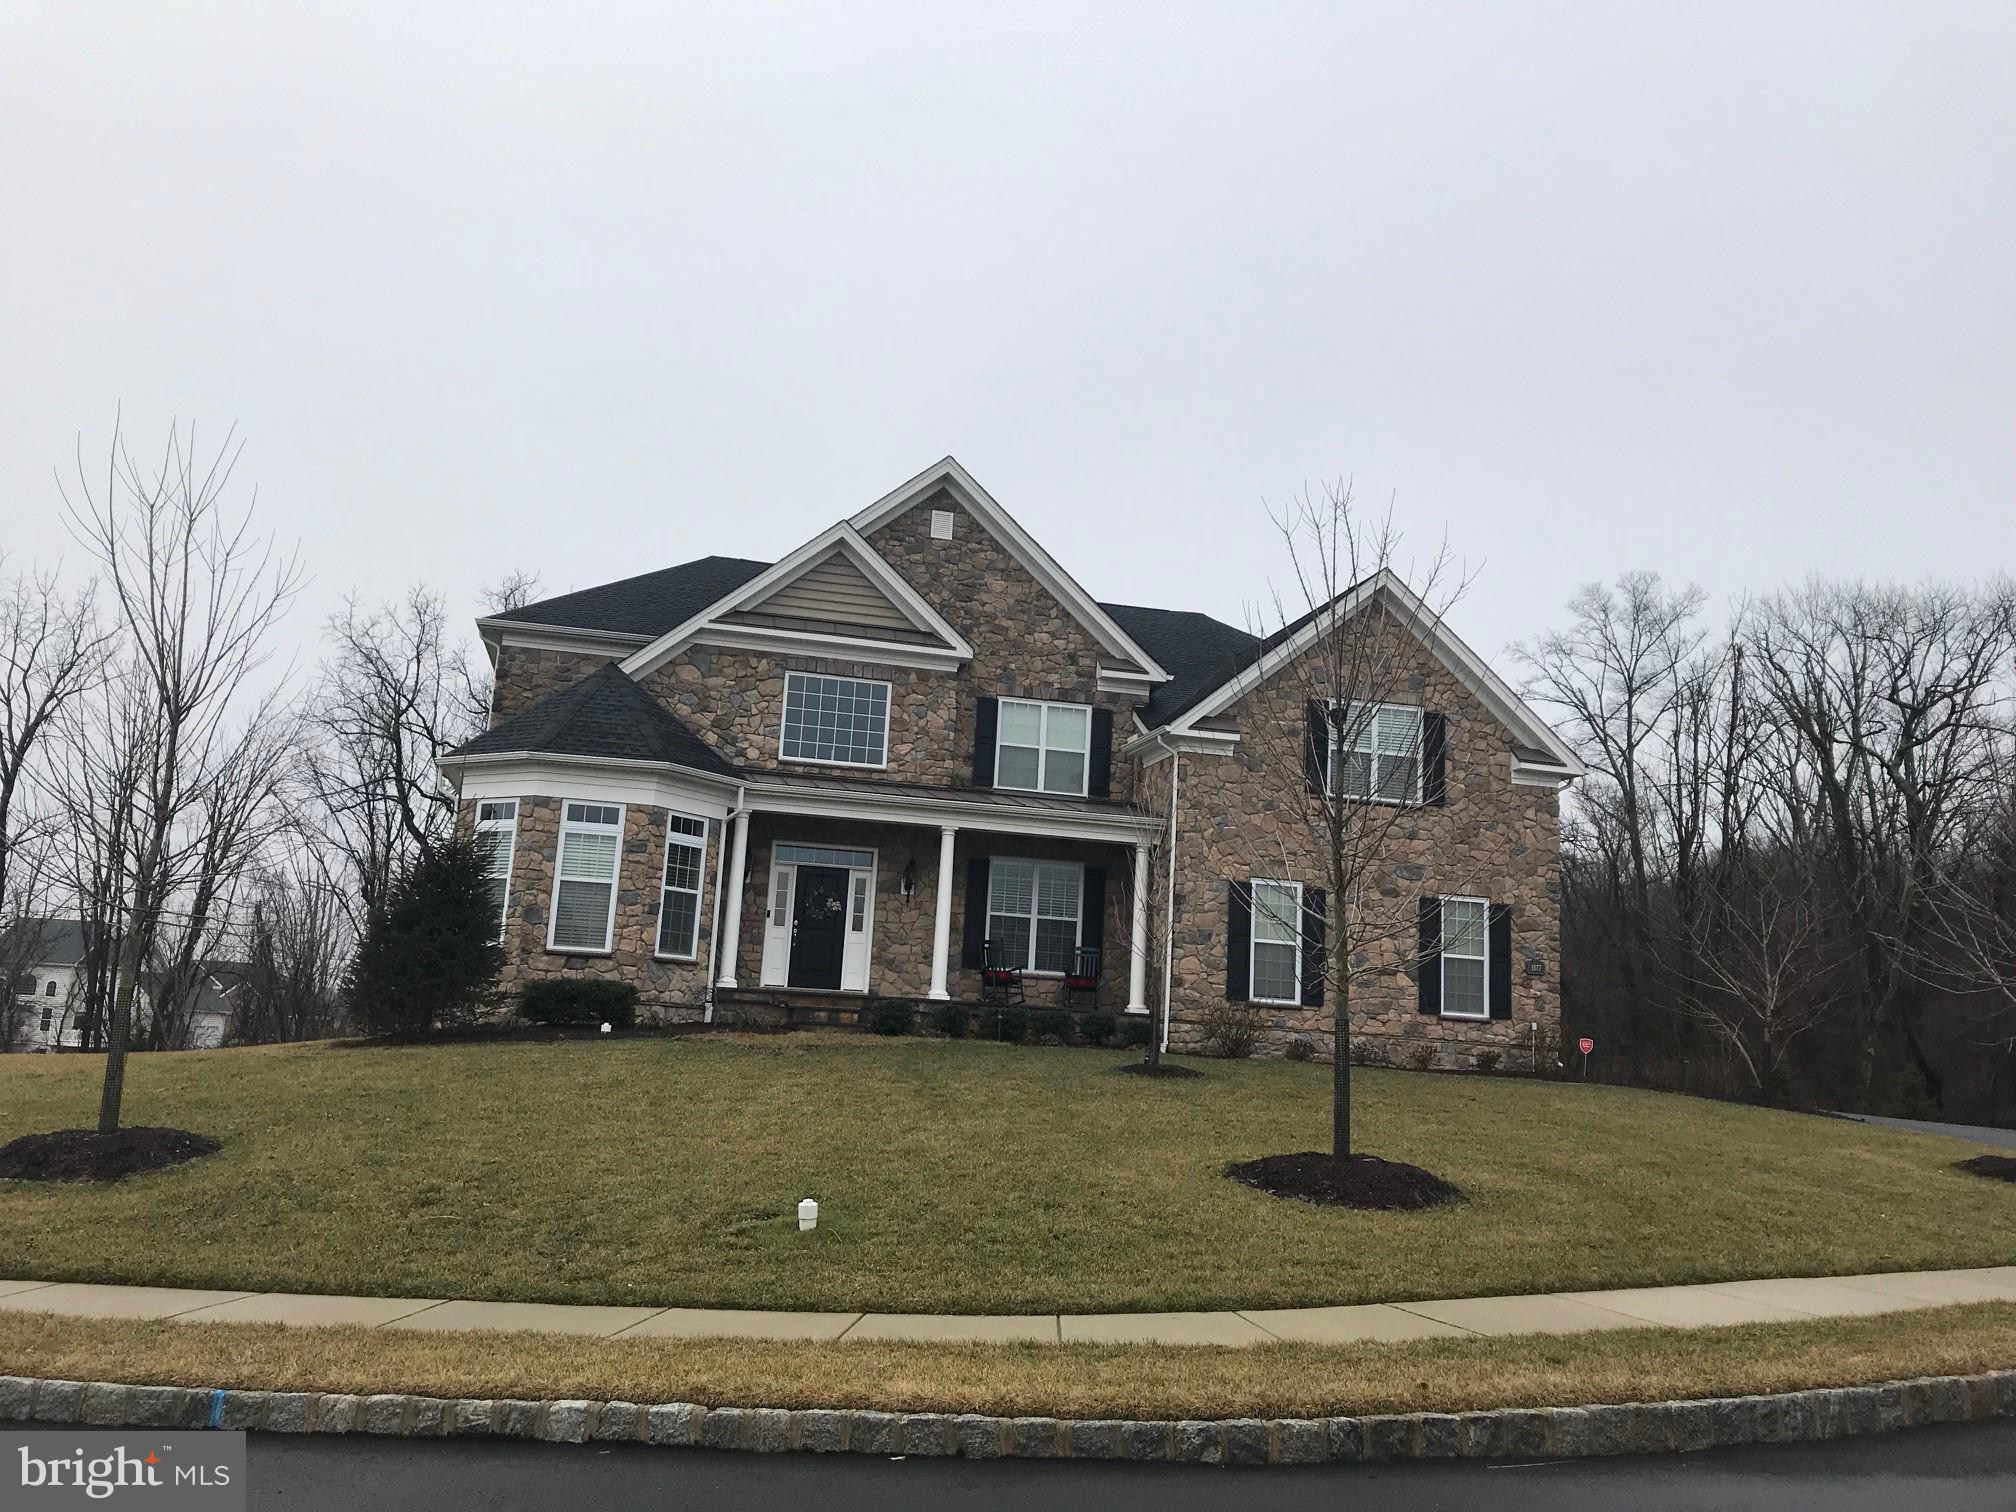 0000 HAWTHORN DRIVE, EAGLEVILLE, PA 19403